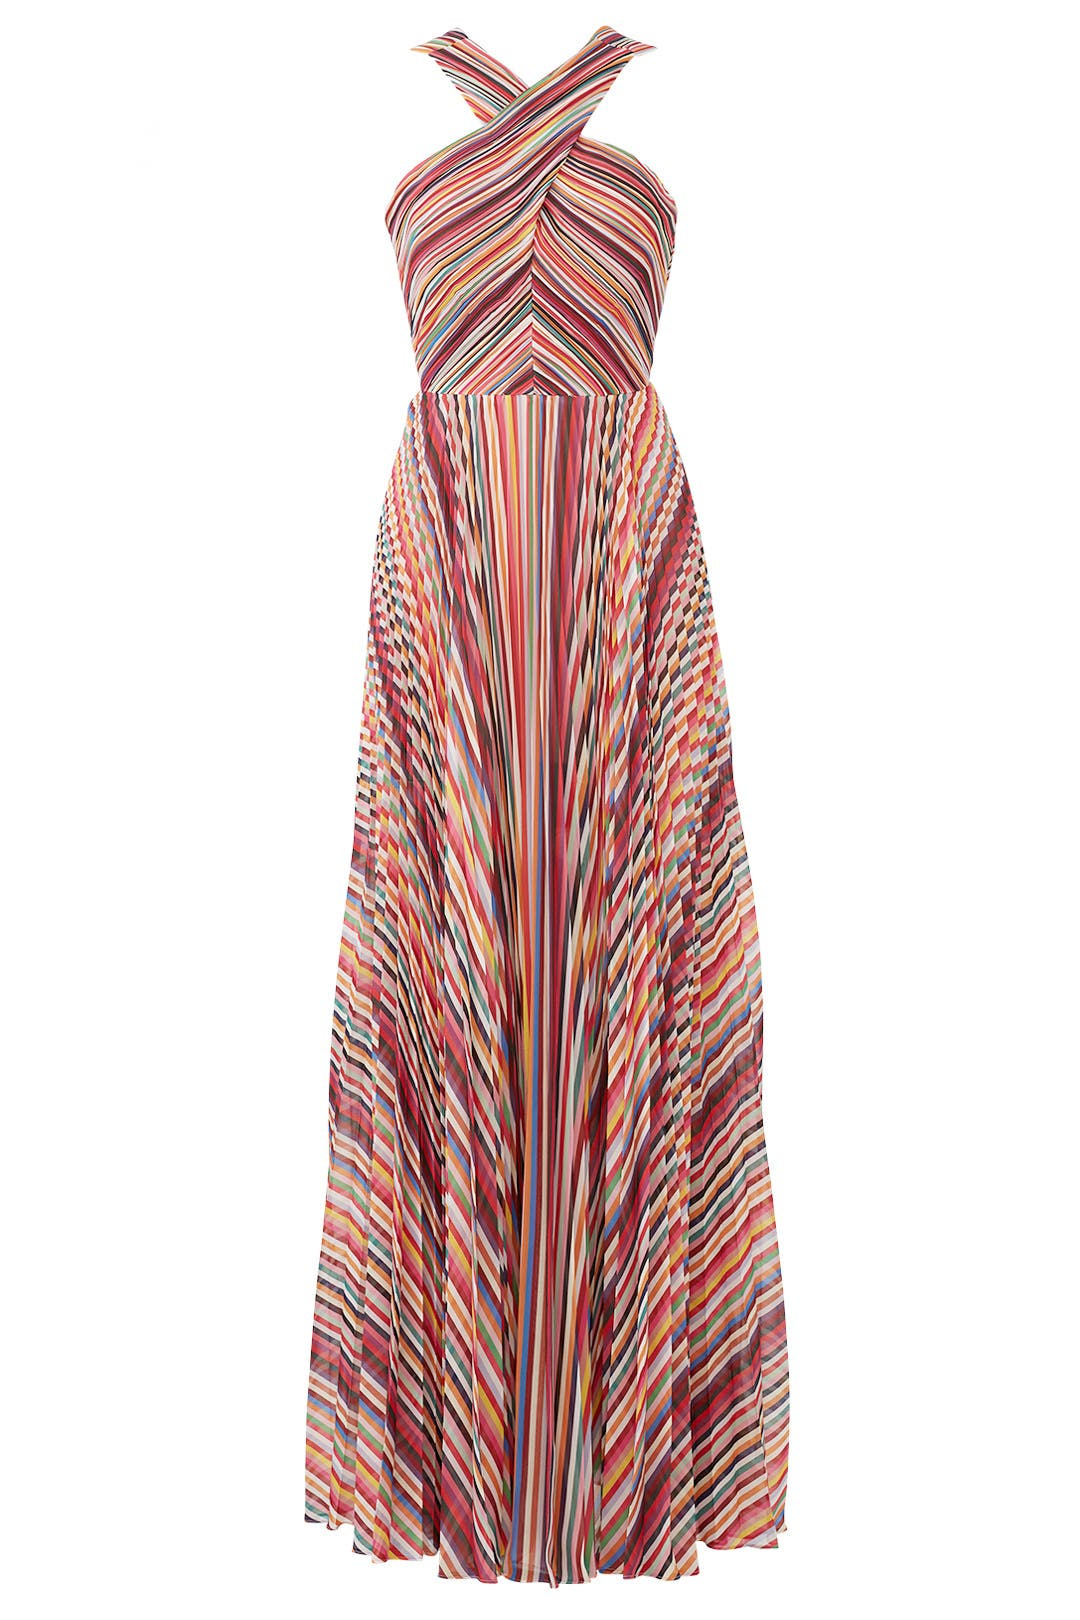 Striped Lana Maxi by AMUR for $120 - $130 | Rent the Runway